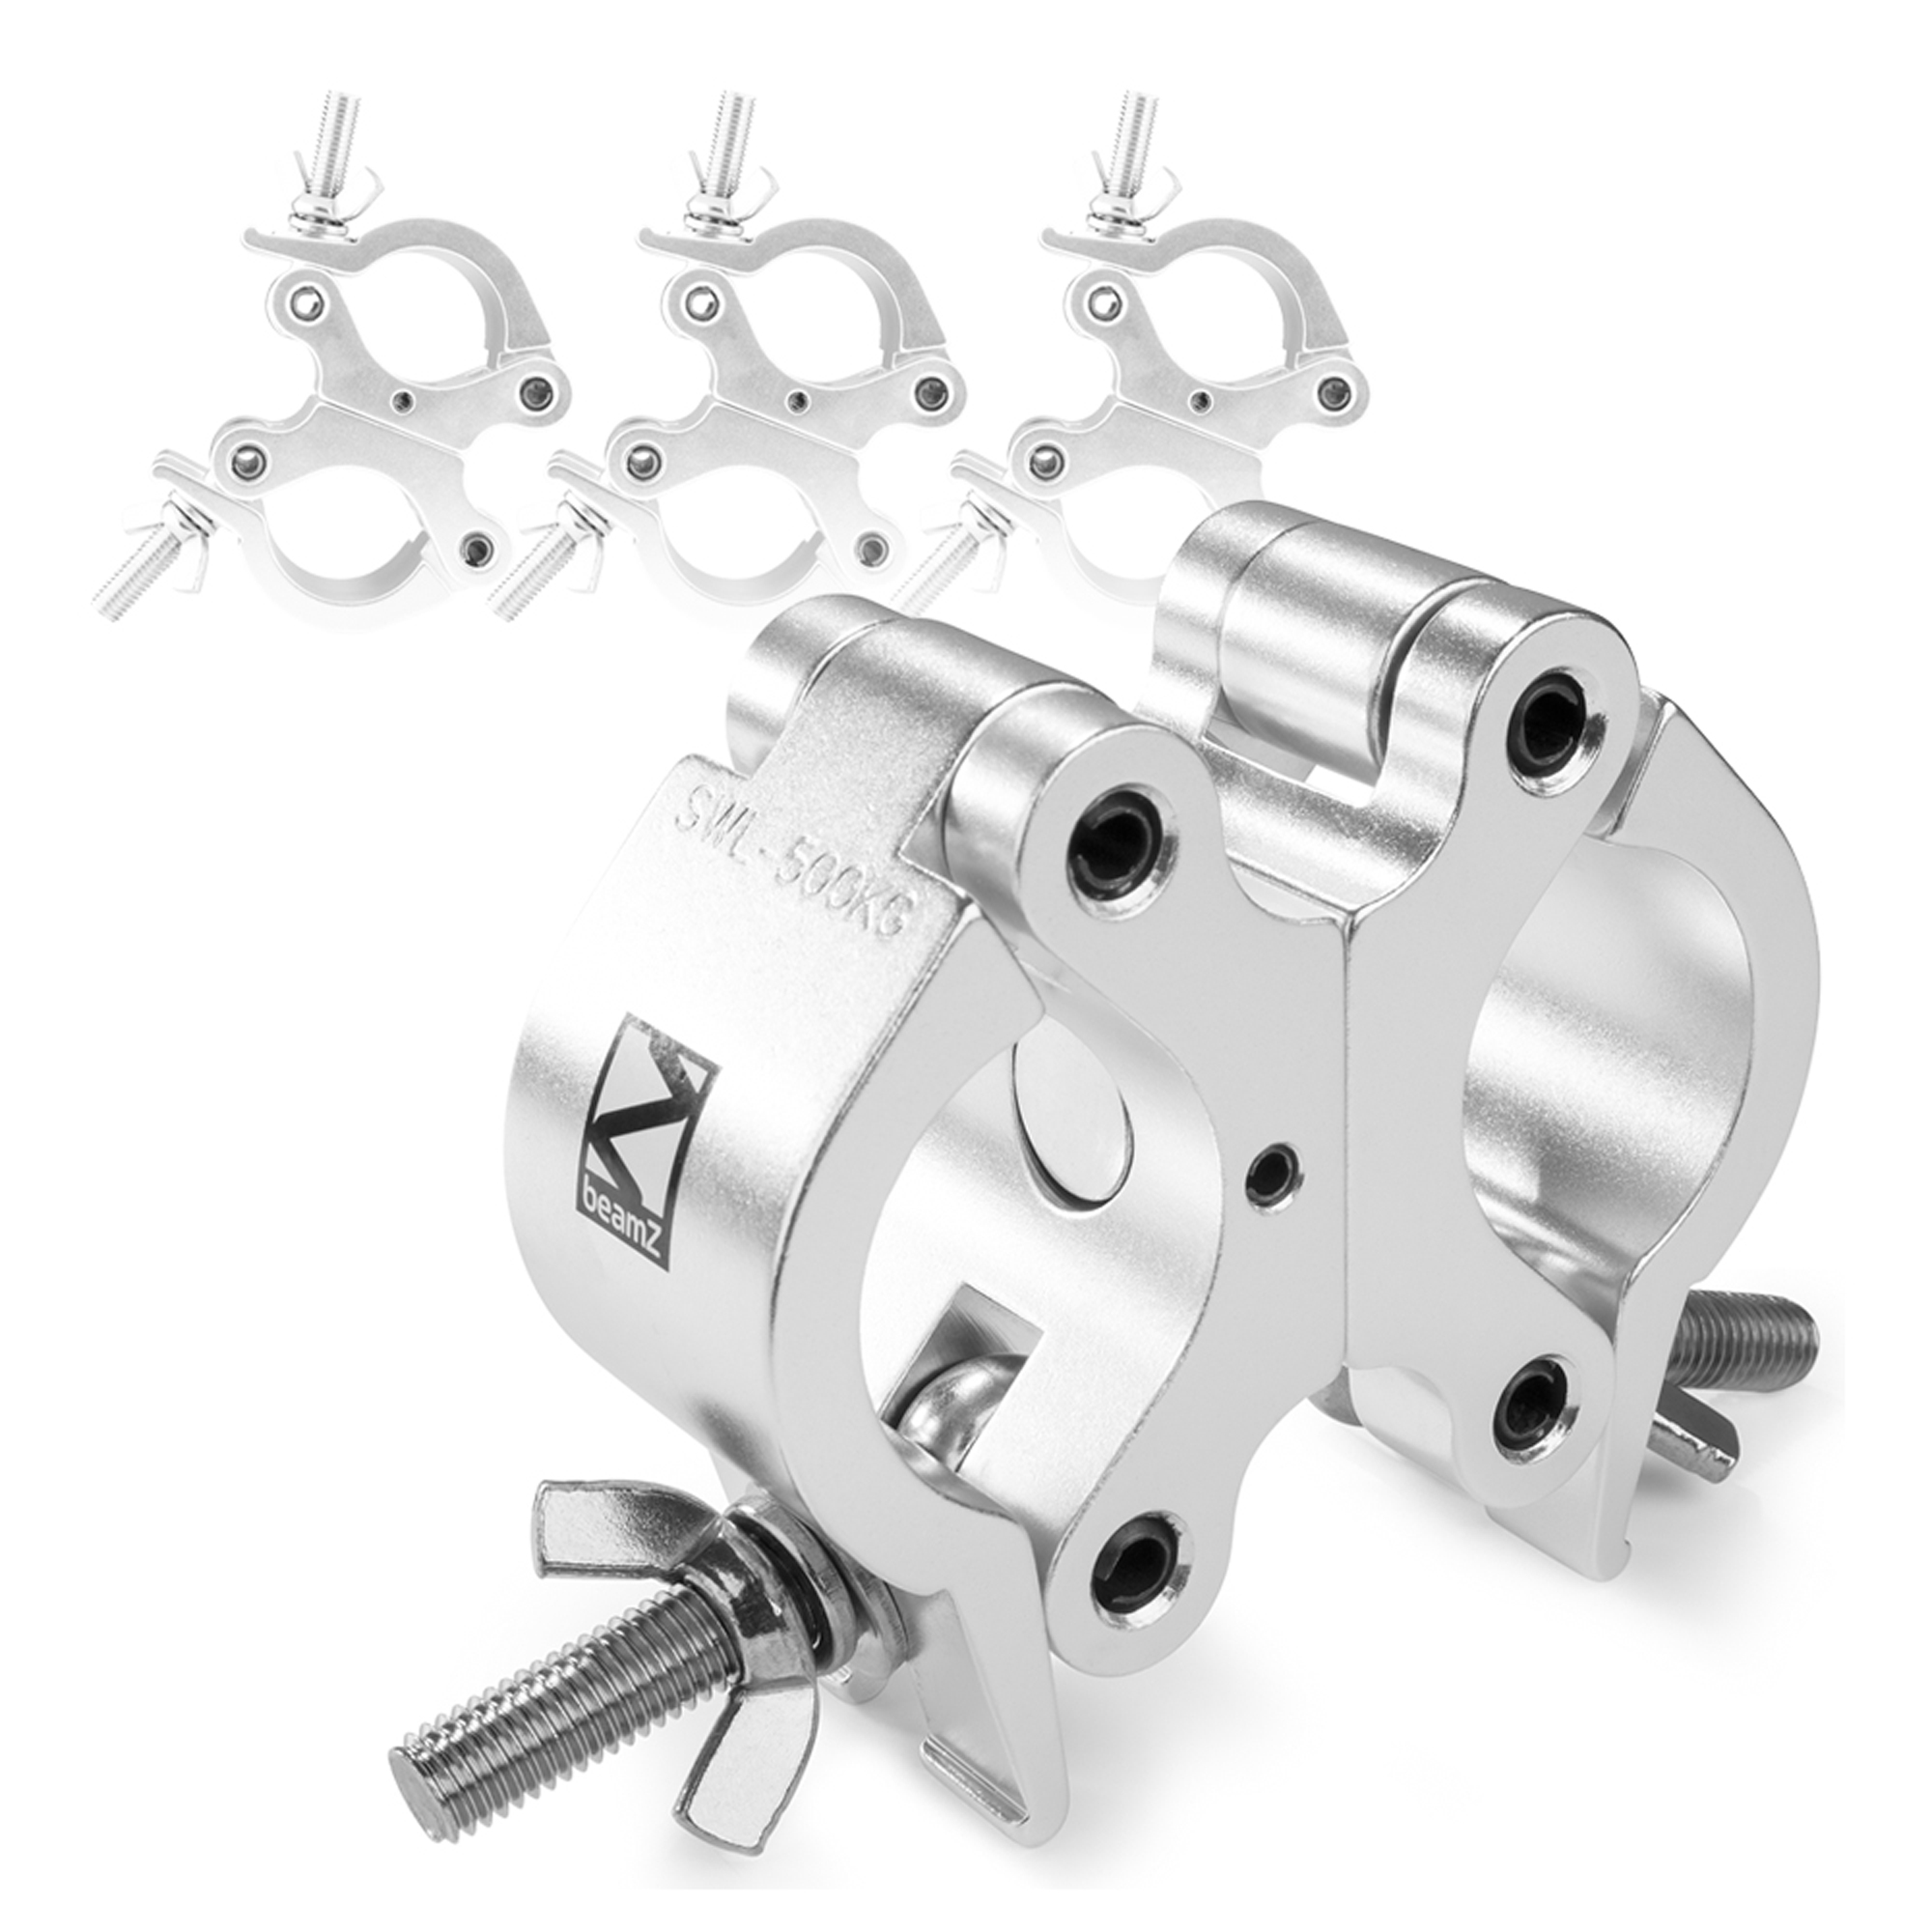 Details about 4 x Swivel Coupler Clamp Truss Goalpost Stage Lighting 48 -  51mm 500kg Aluminium